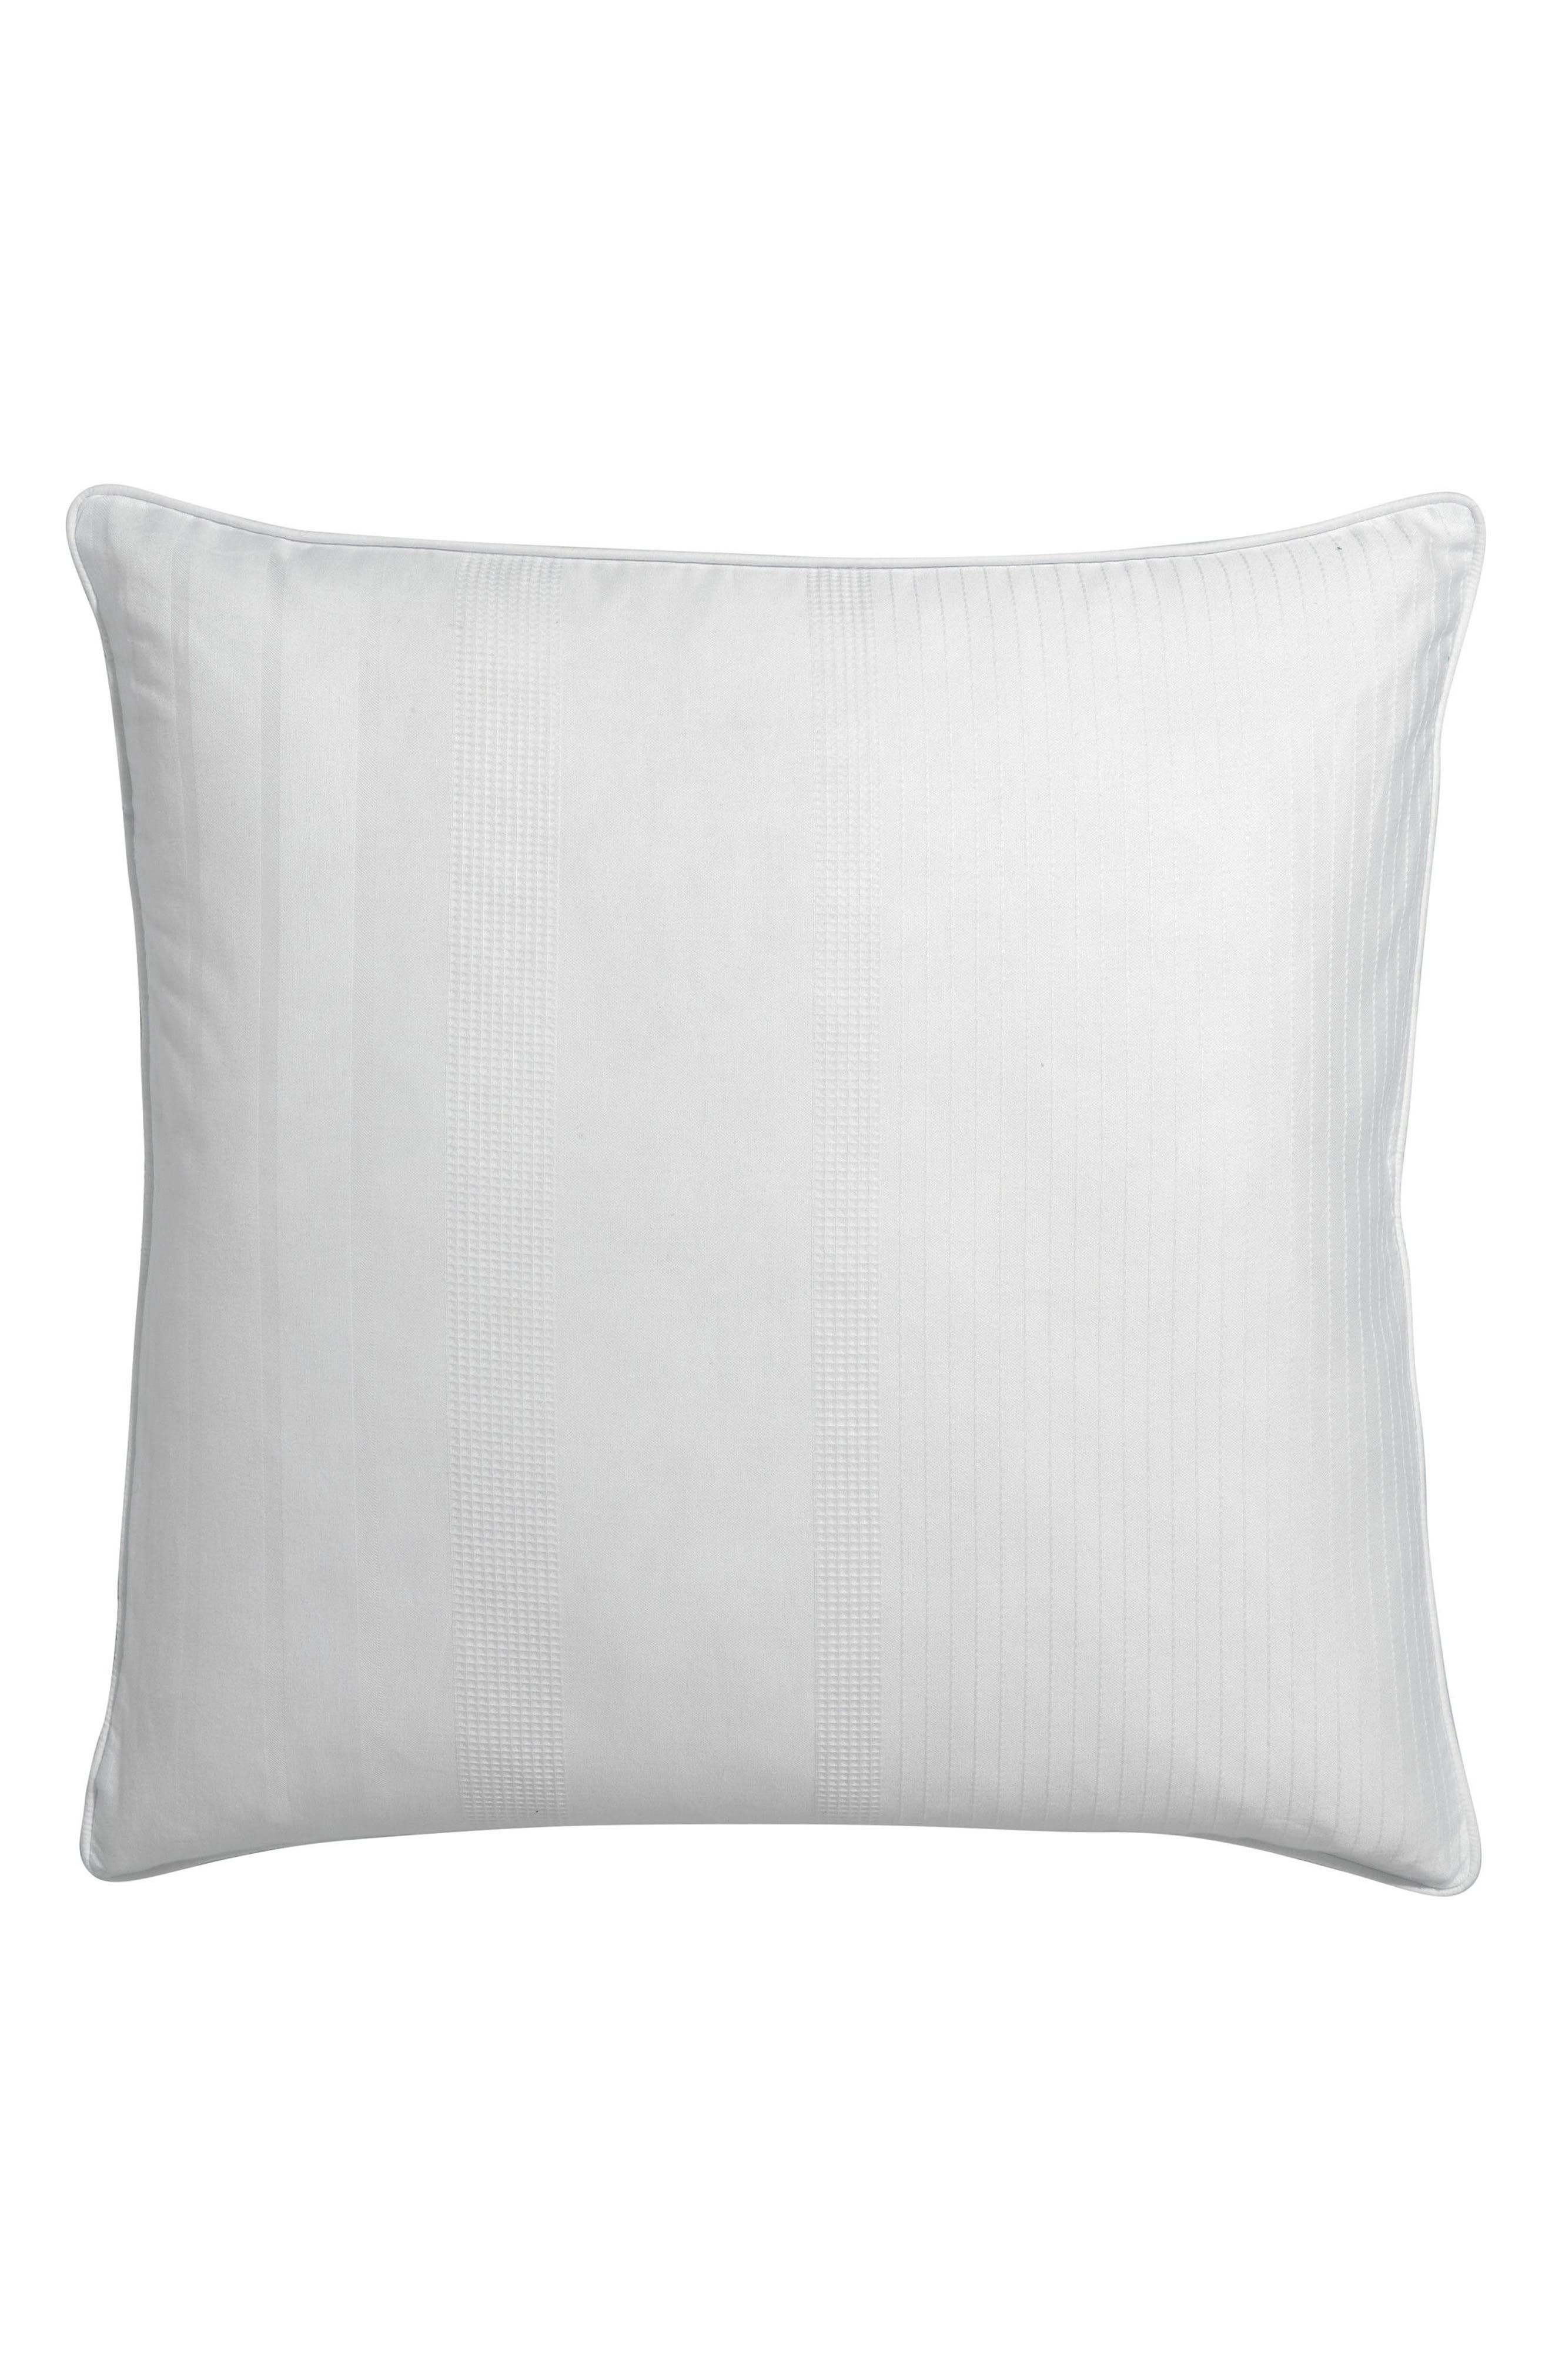 Sloane Square Organic Cotton Dobby Accent Pillow,                             Main thumbnail 1, color,                             100